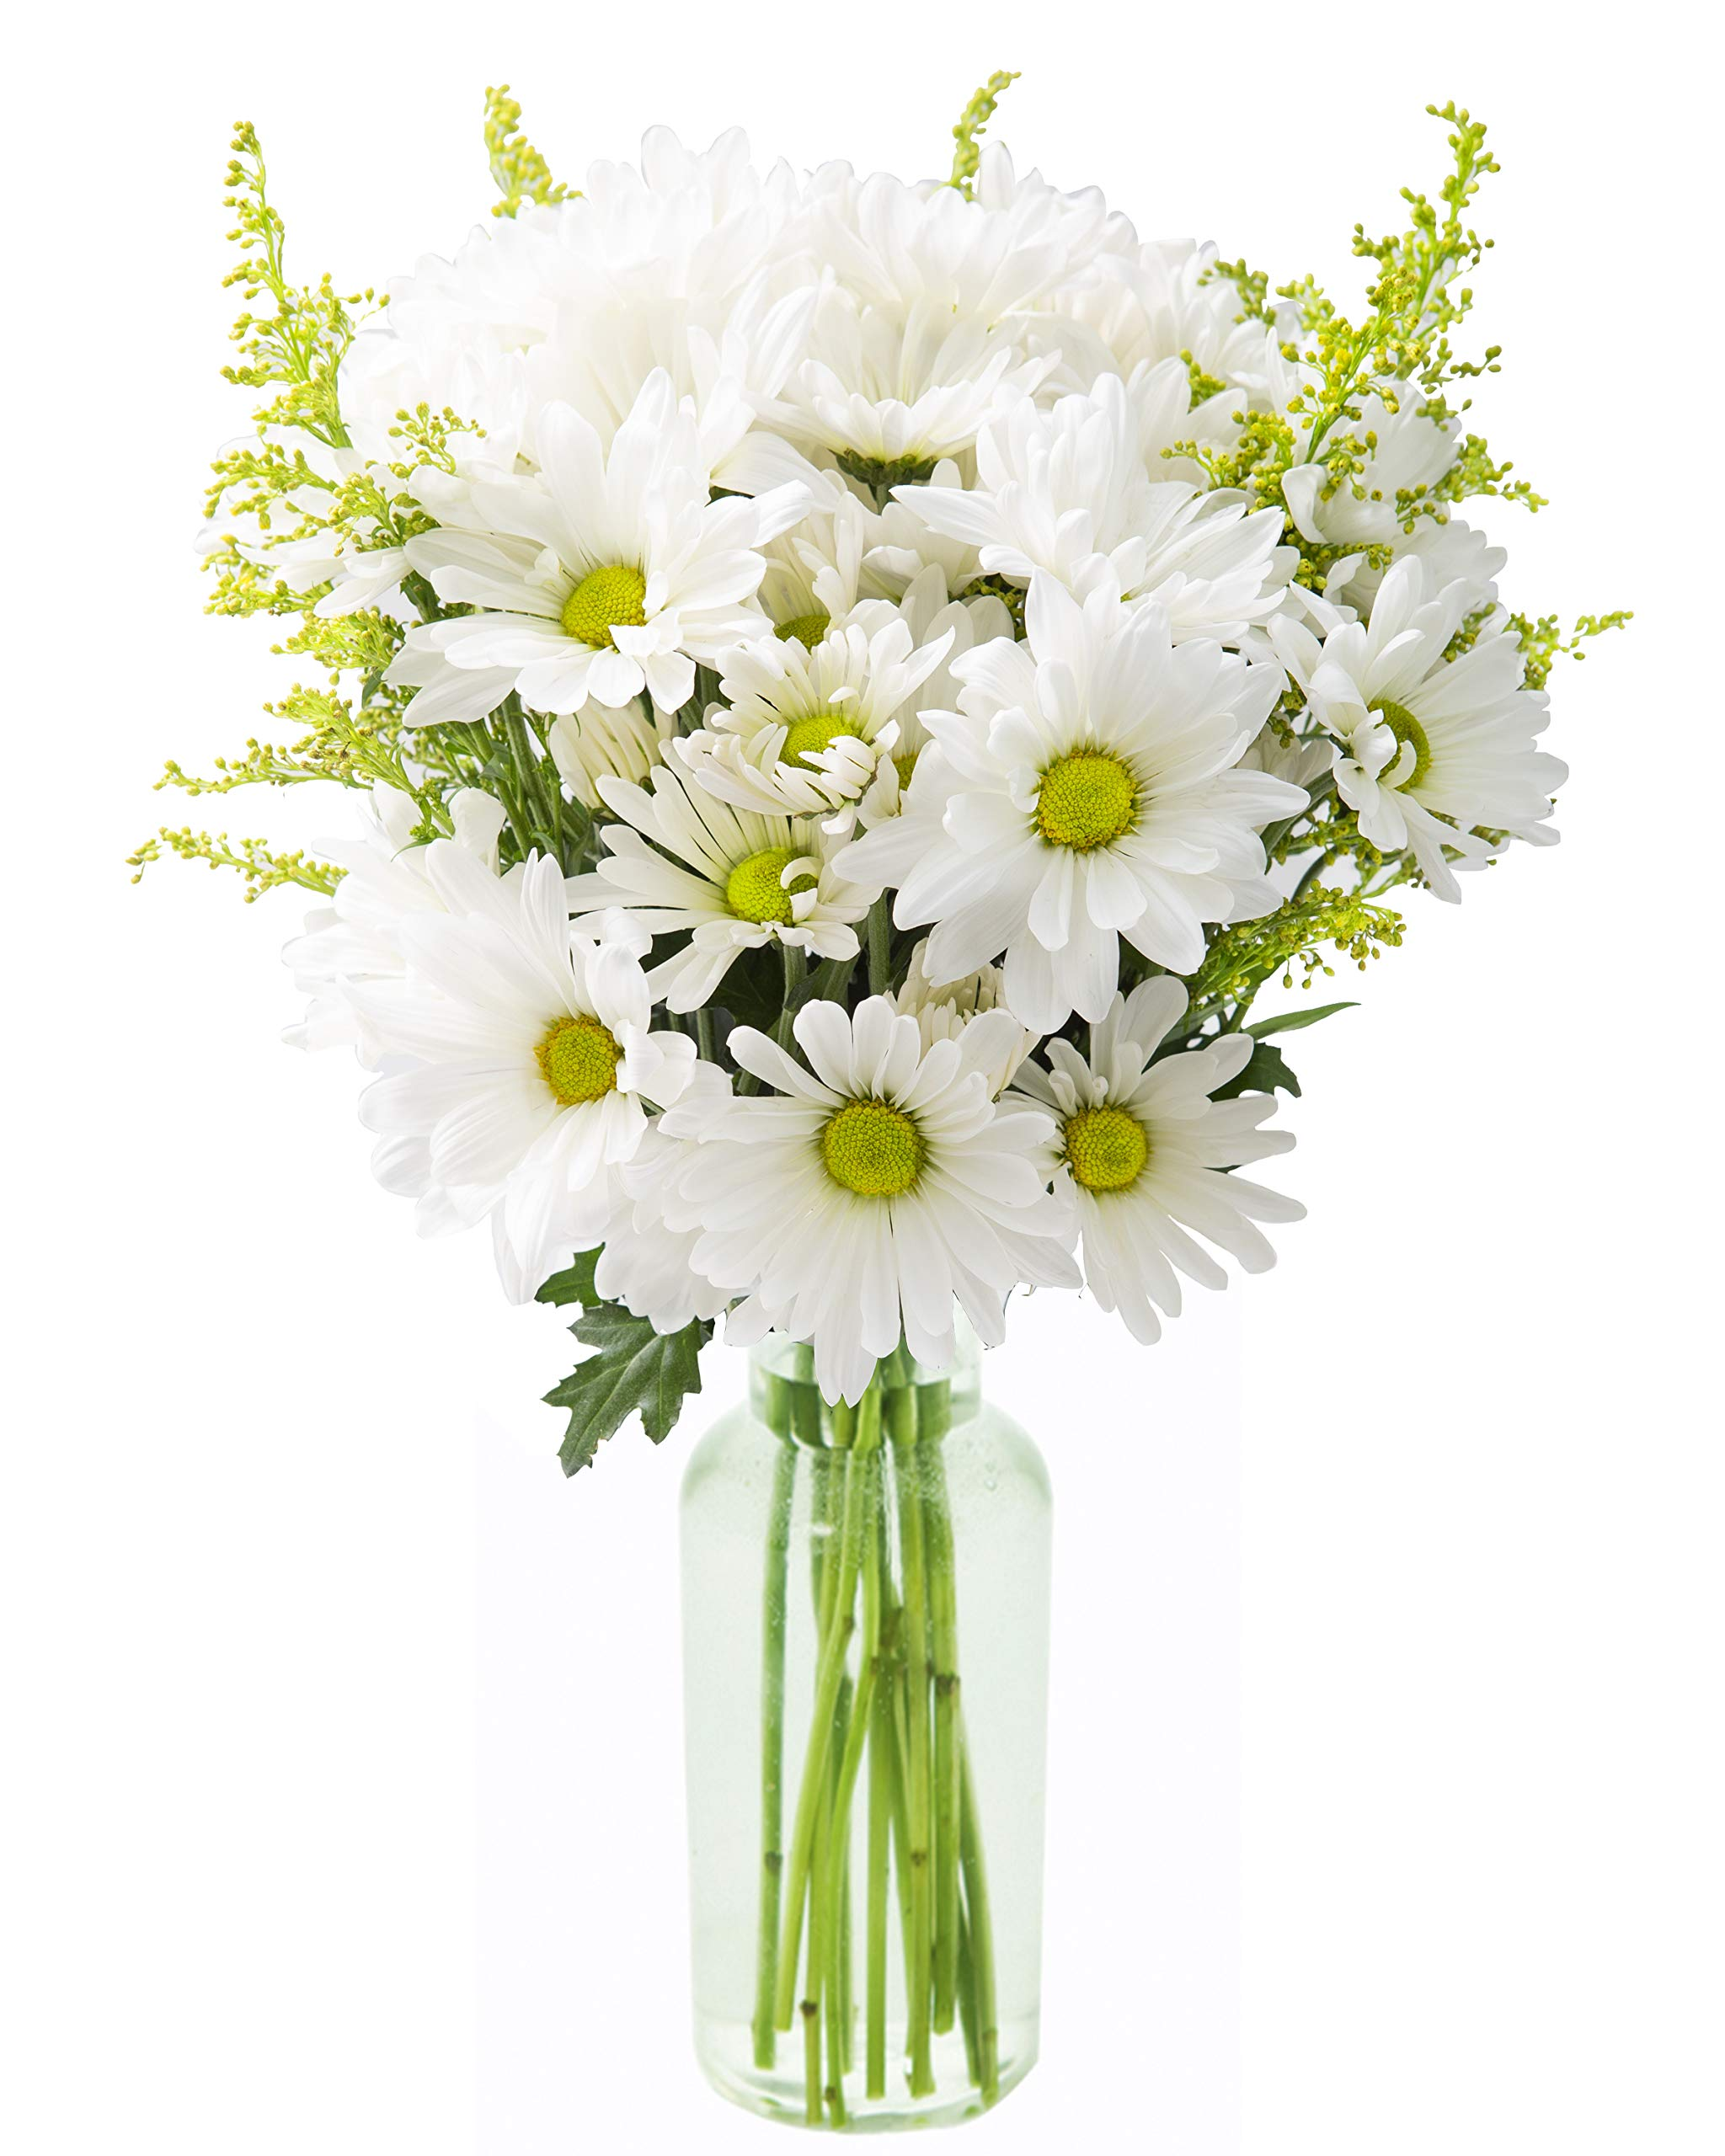 KaBloom Bountiful Beauty Bouquet of Fresh White Daisies with Vase